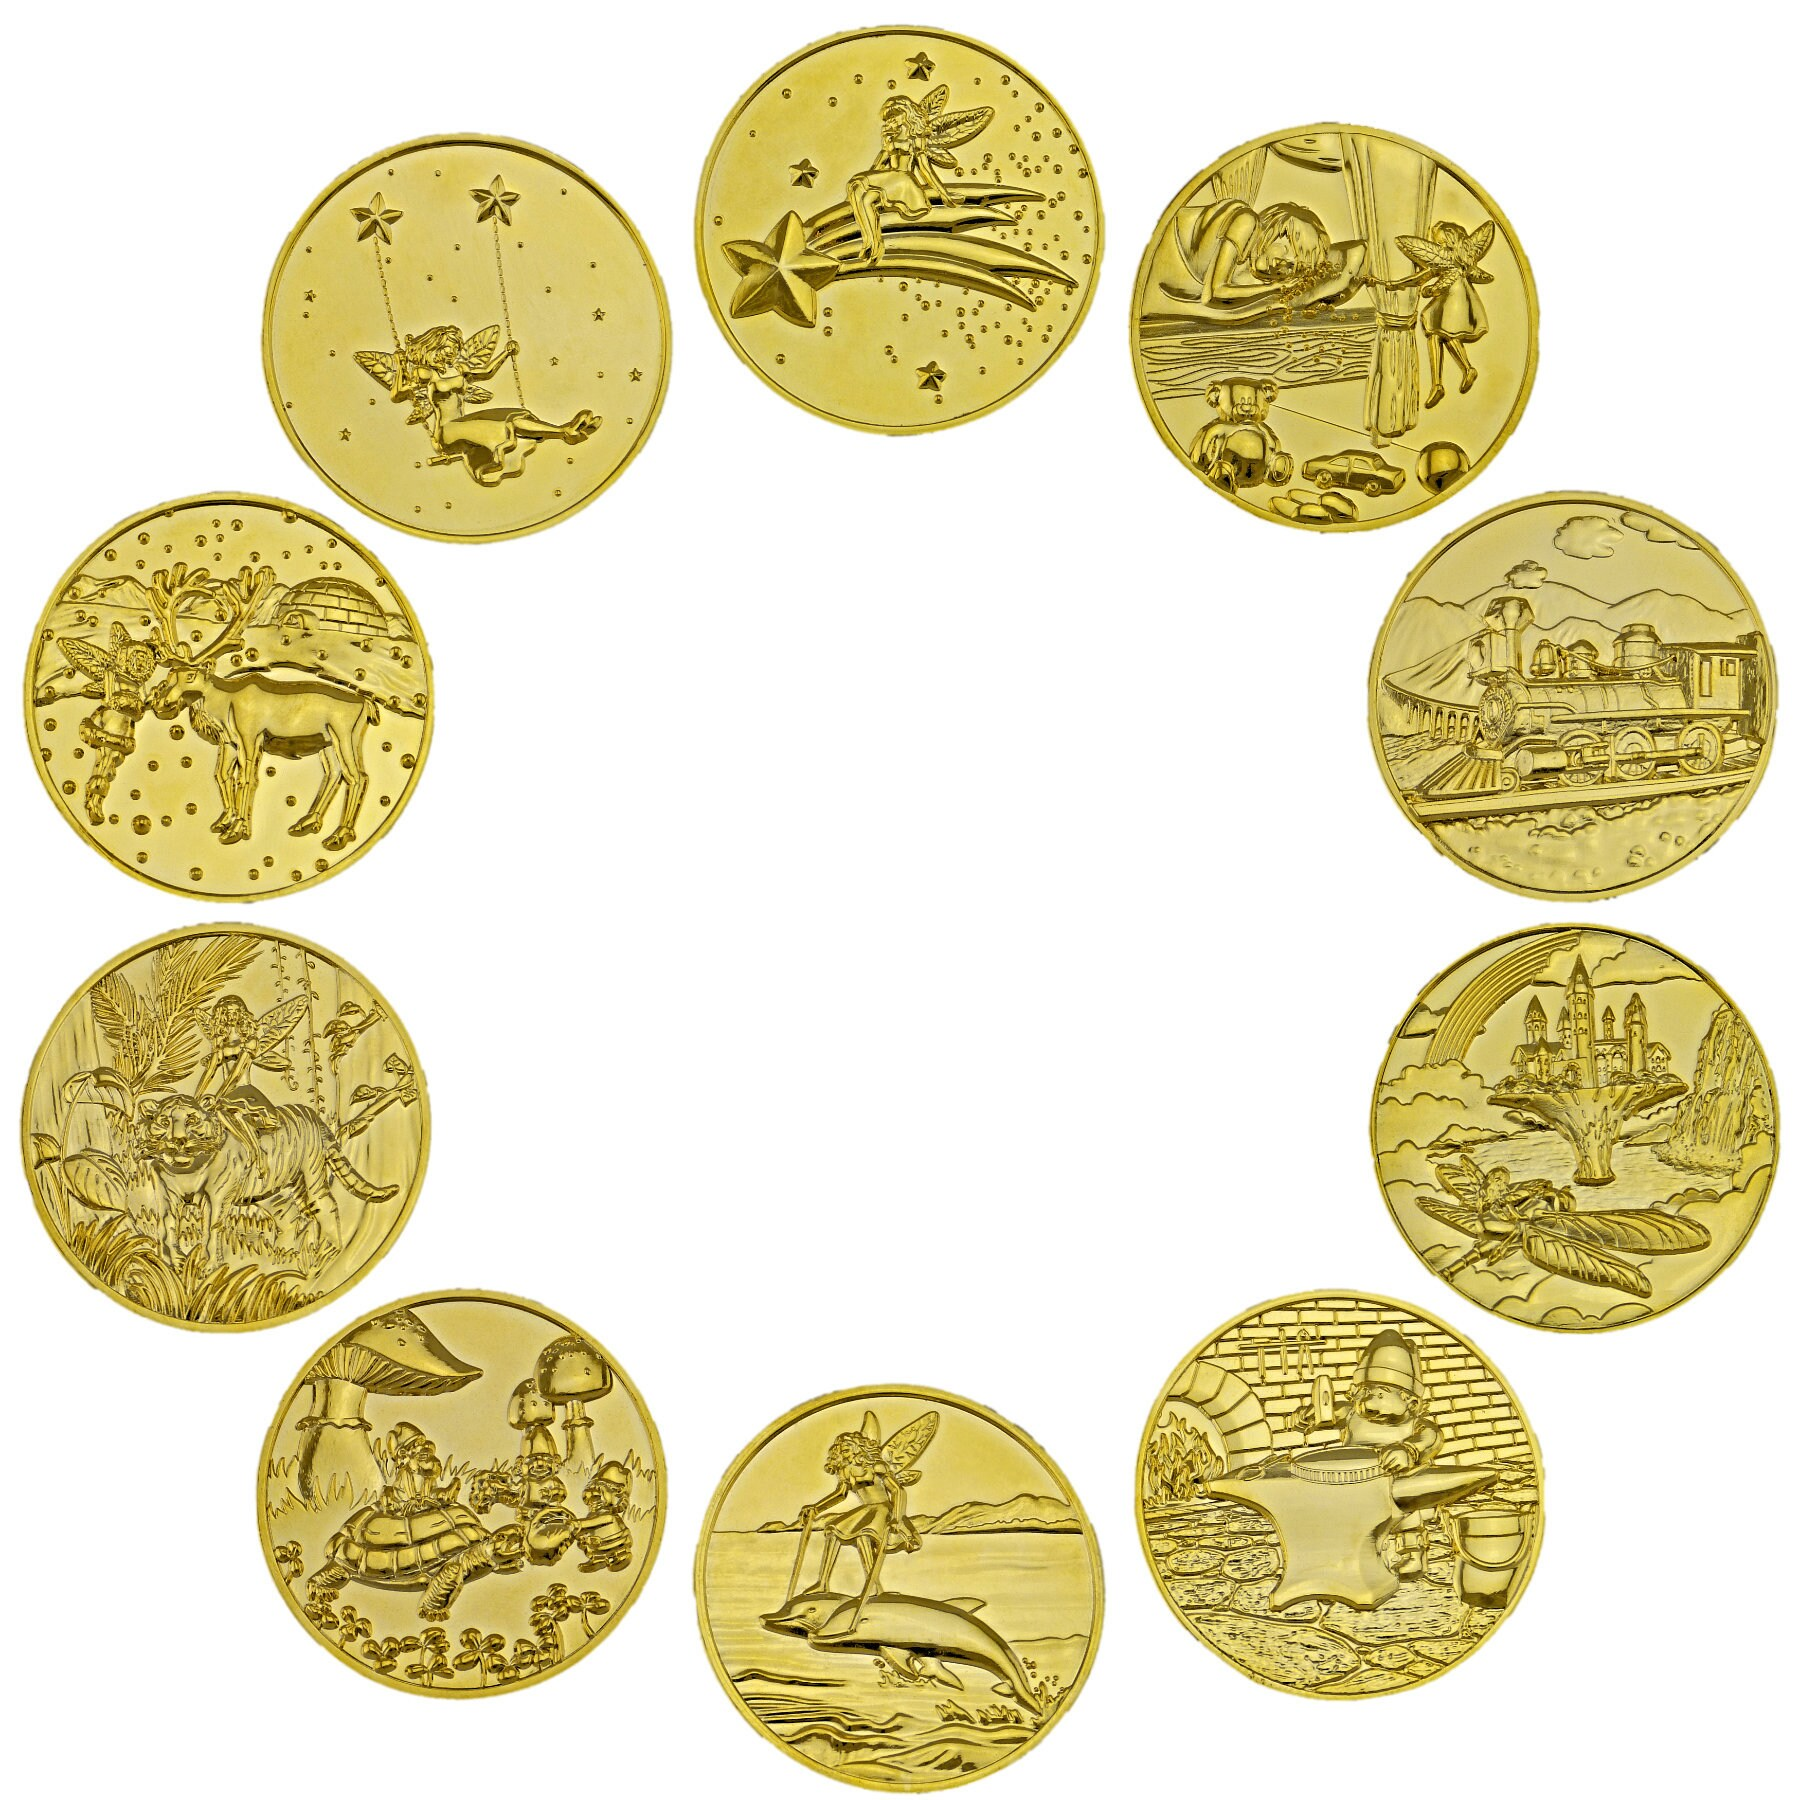 Tooth Fairy Coins Designer Set 1 goldplated image 1